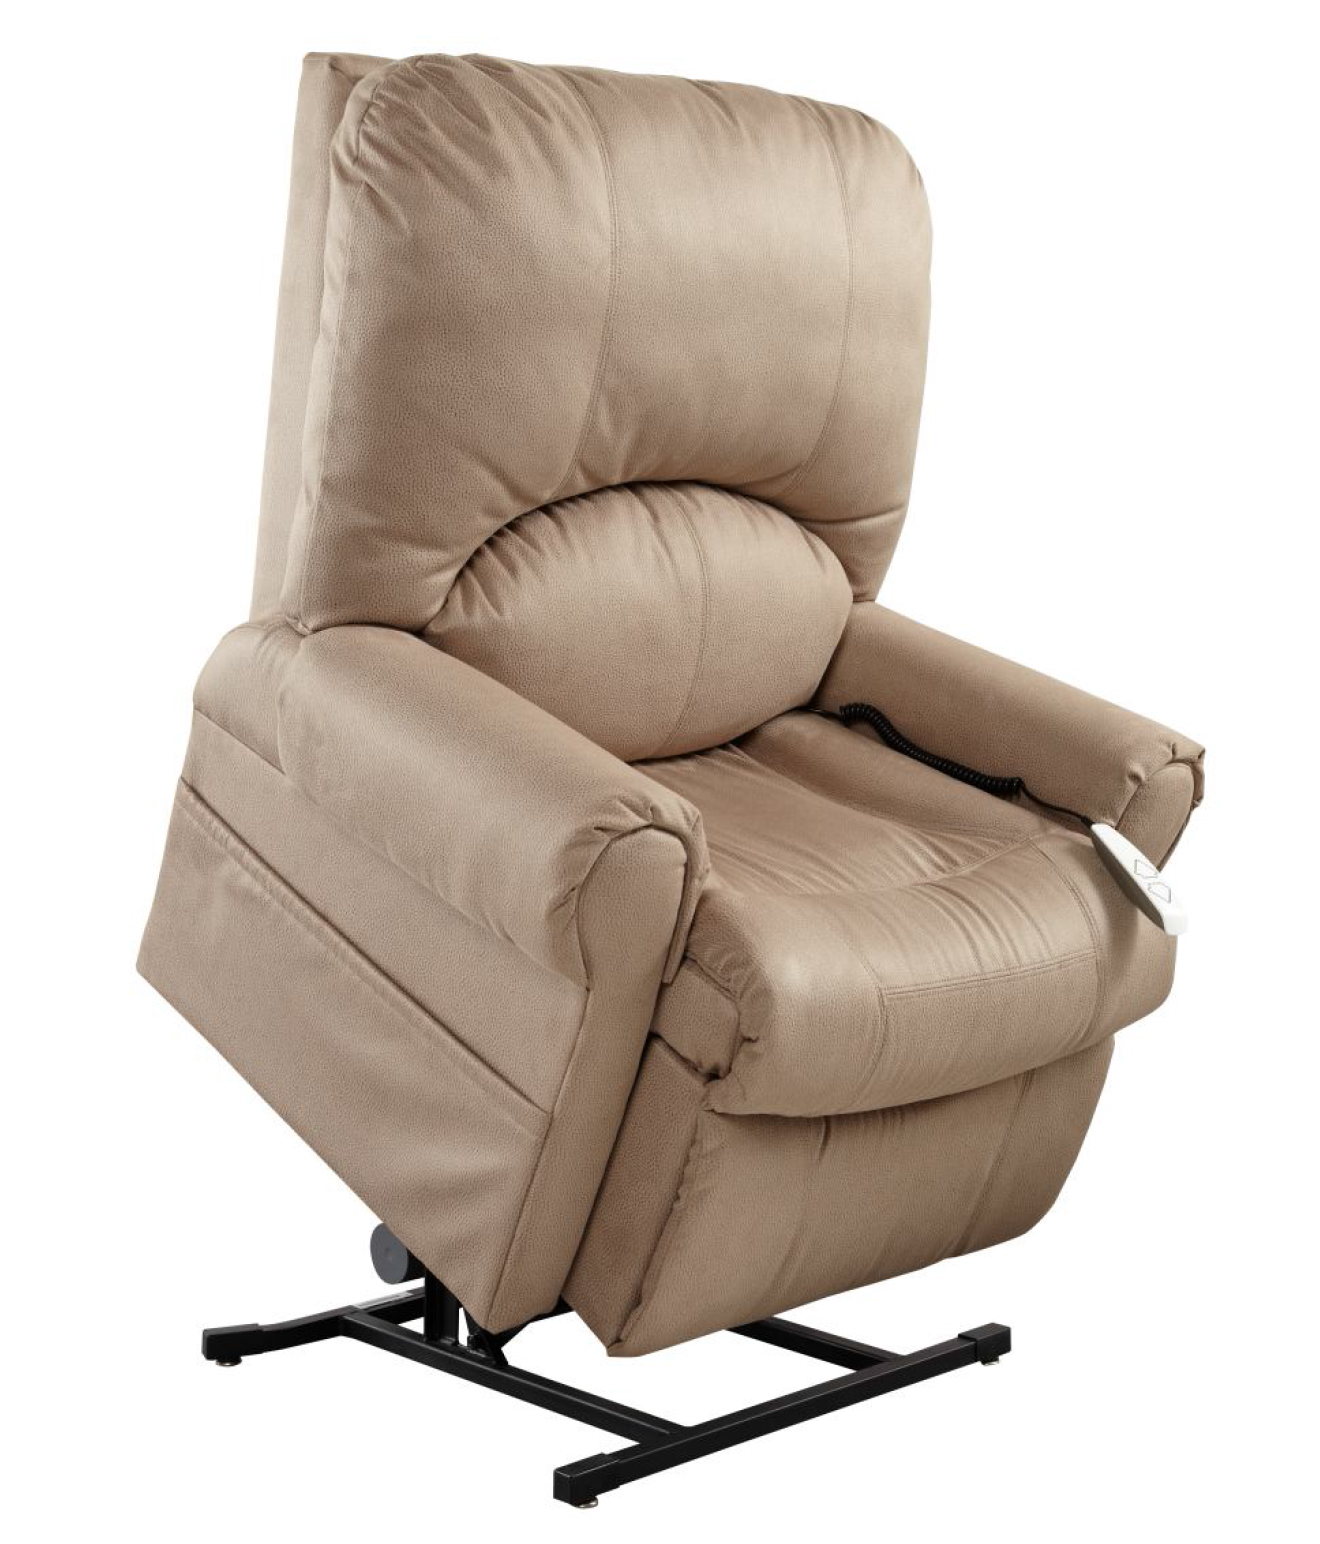 AS 6001 Torch Electric Power Recliner Lift Chair By Mega Motion Three Posit